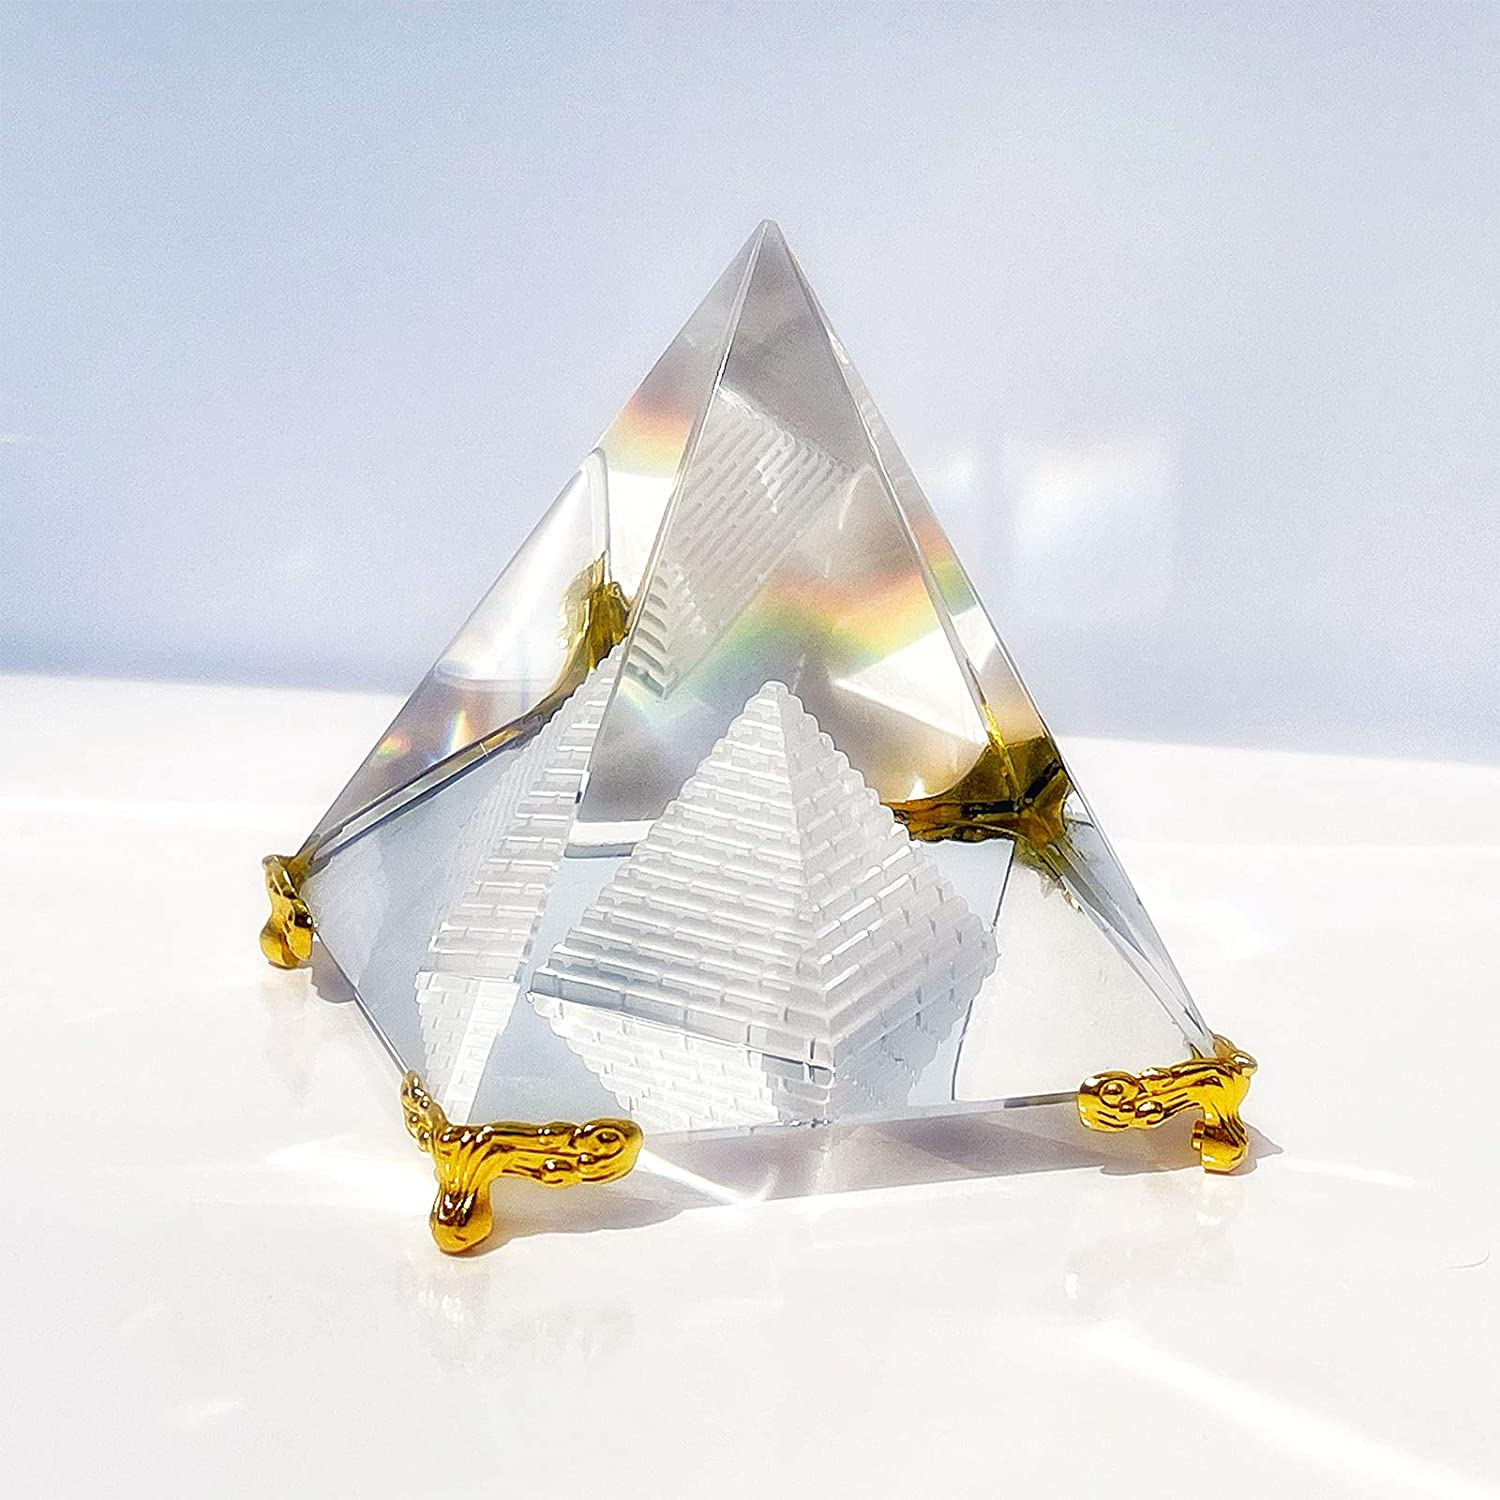 Crystal Pyramid Prism, Feng Shui Crafts Meditation Crystal with Gold Stand for Home Office Art Decor, Pyramids Gift, Stand for Prosperity, Positive Energy and Good Luck(3.15inch/80mm)